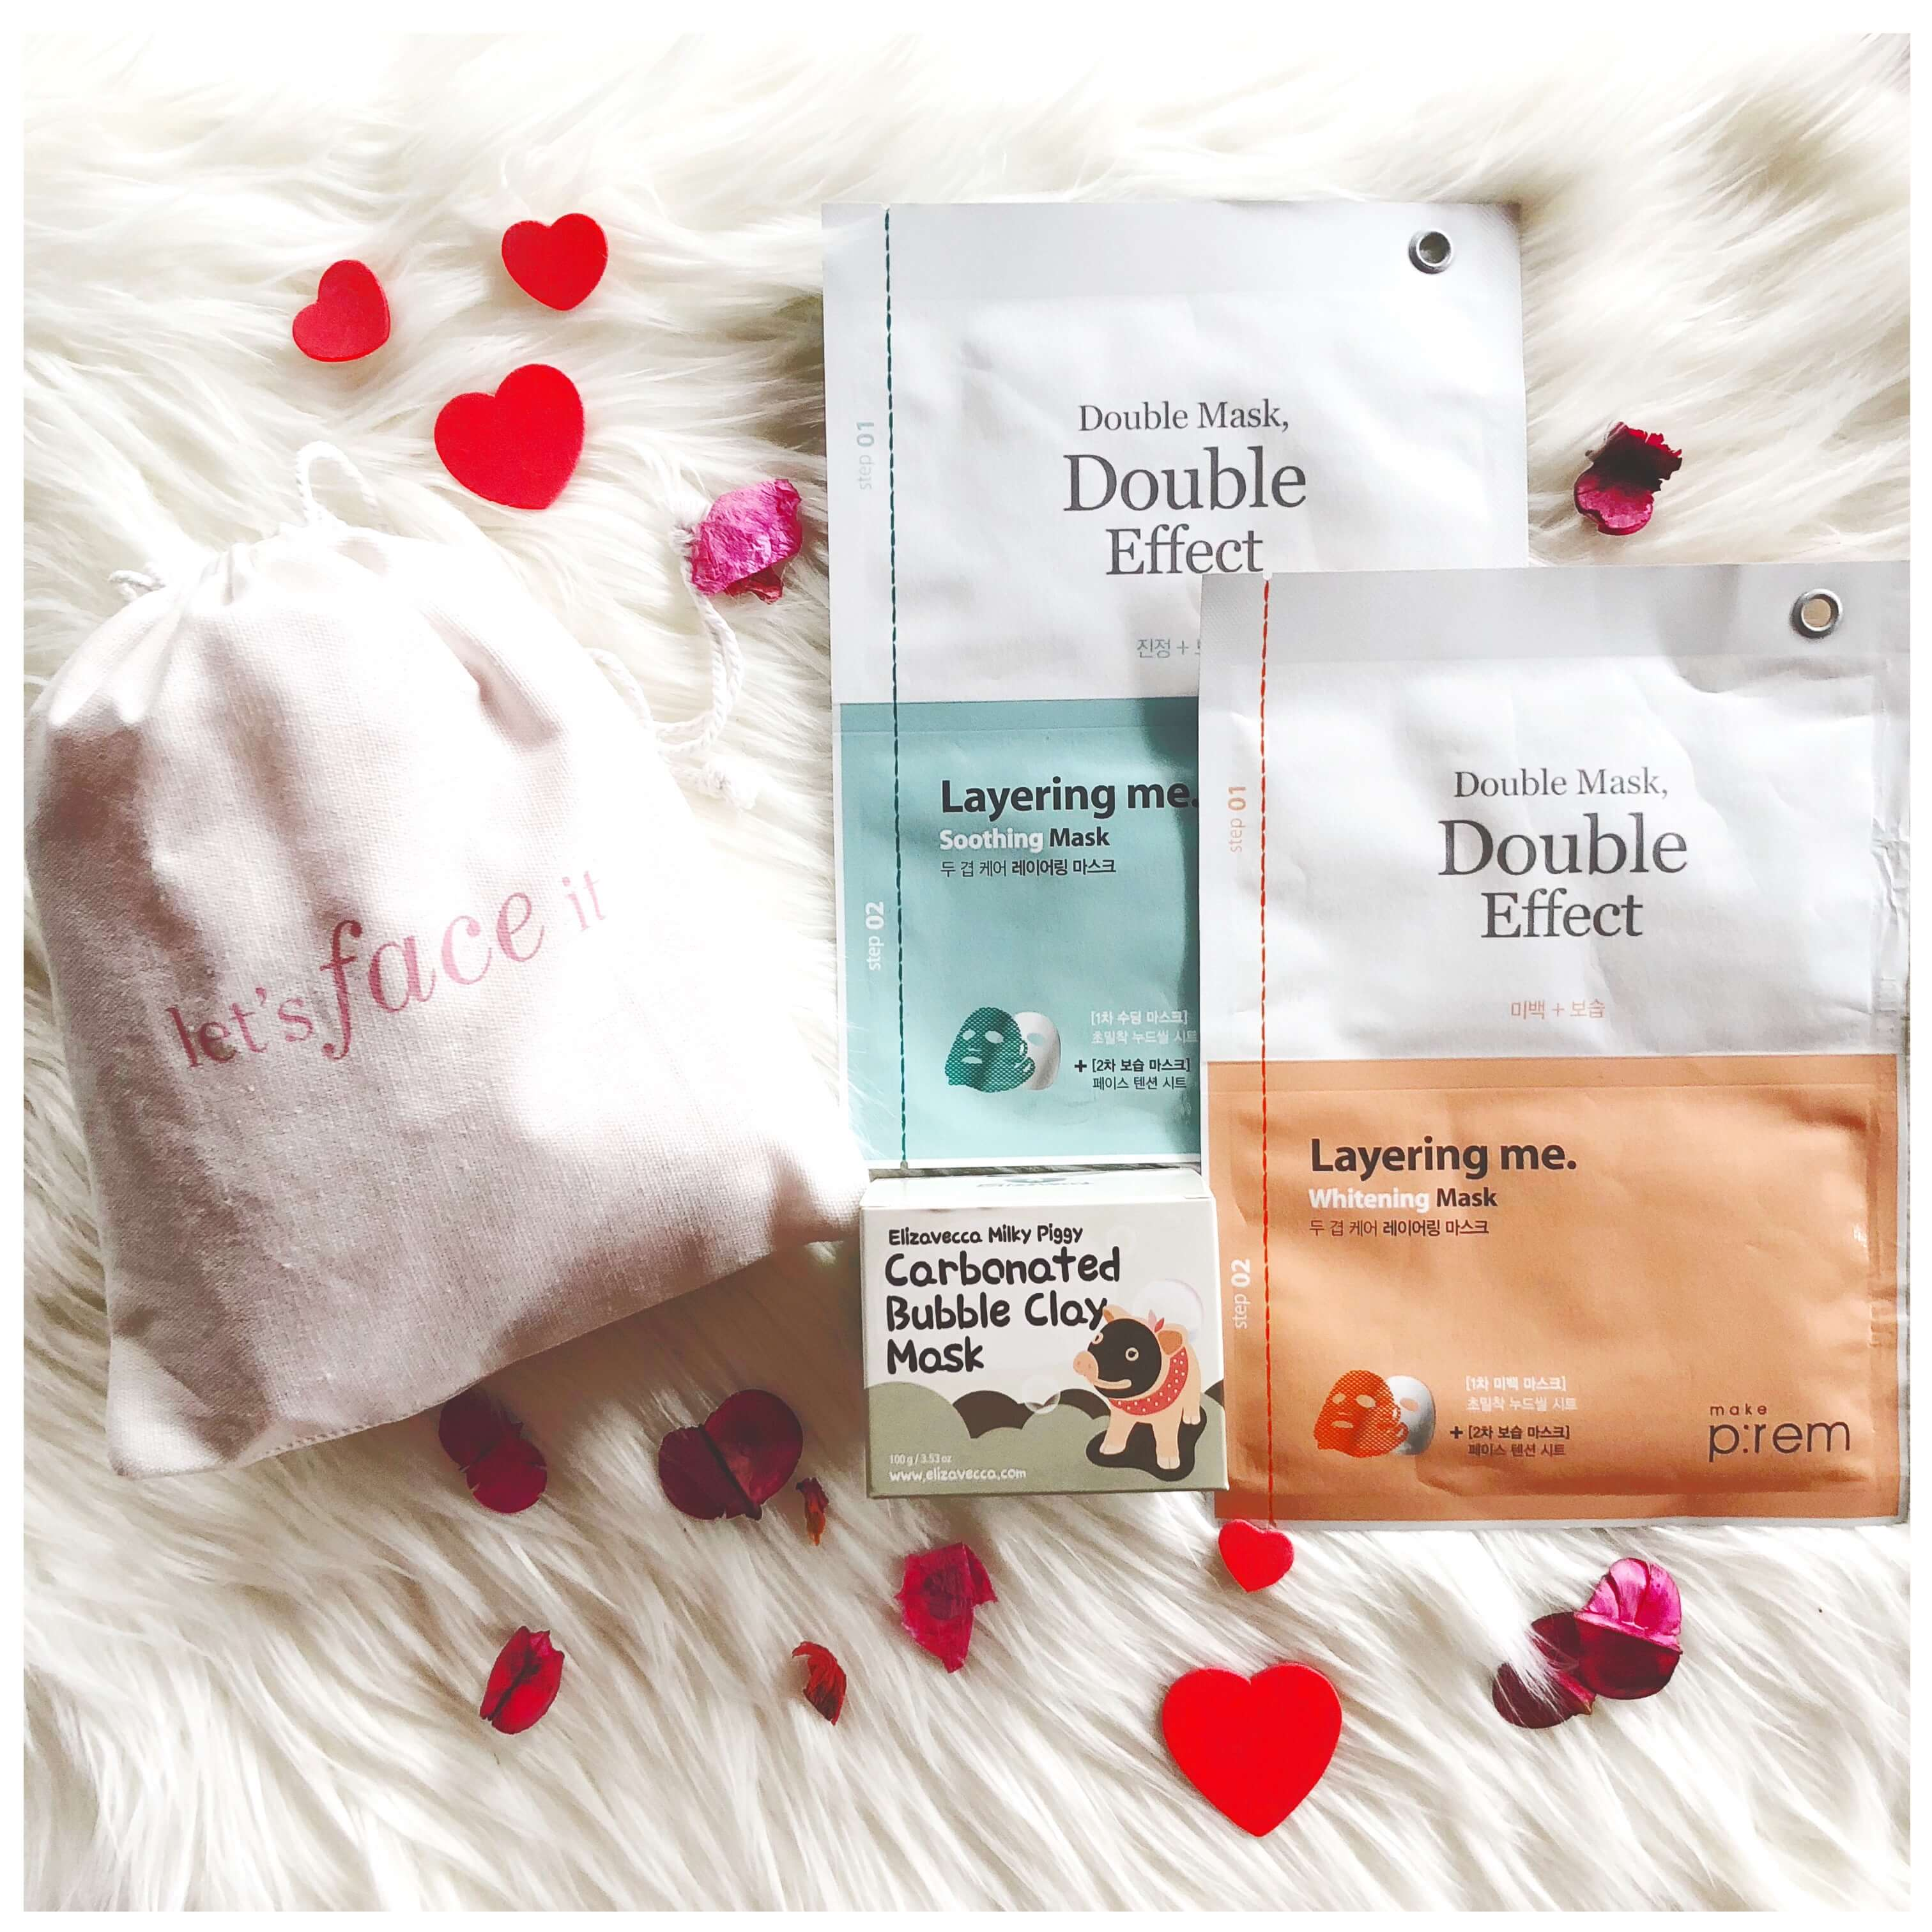 Valentine's Day korean beauty gift pack under $50 with elizavecca bubble clay mask